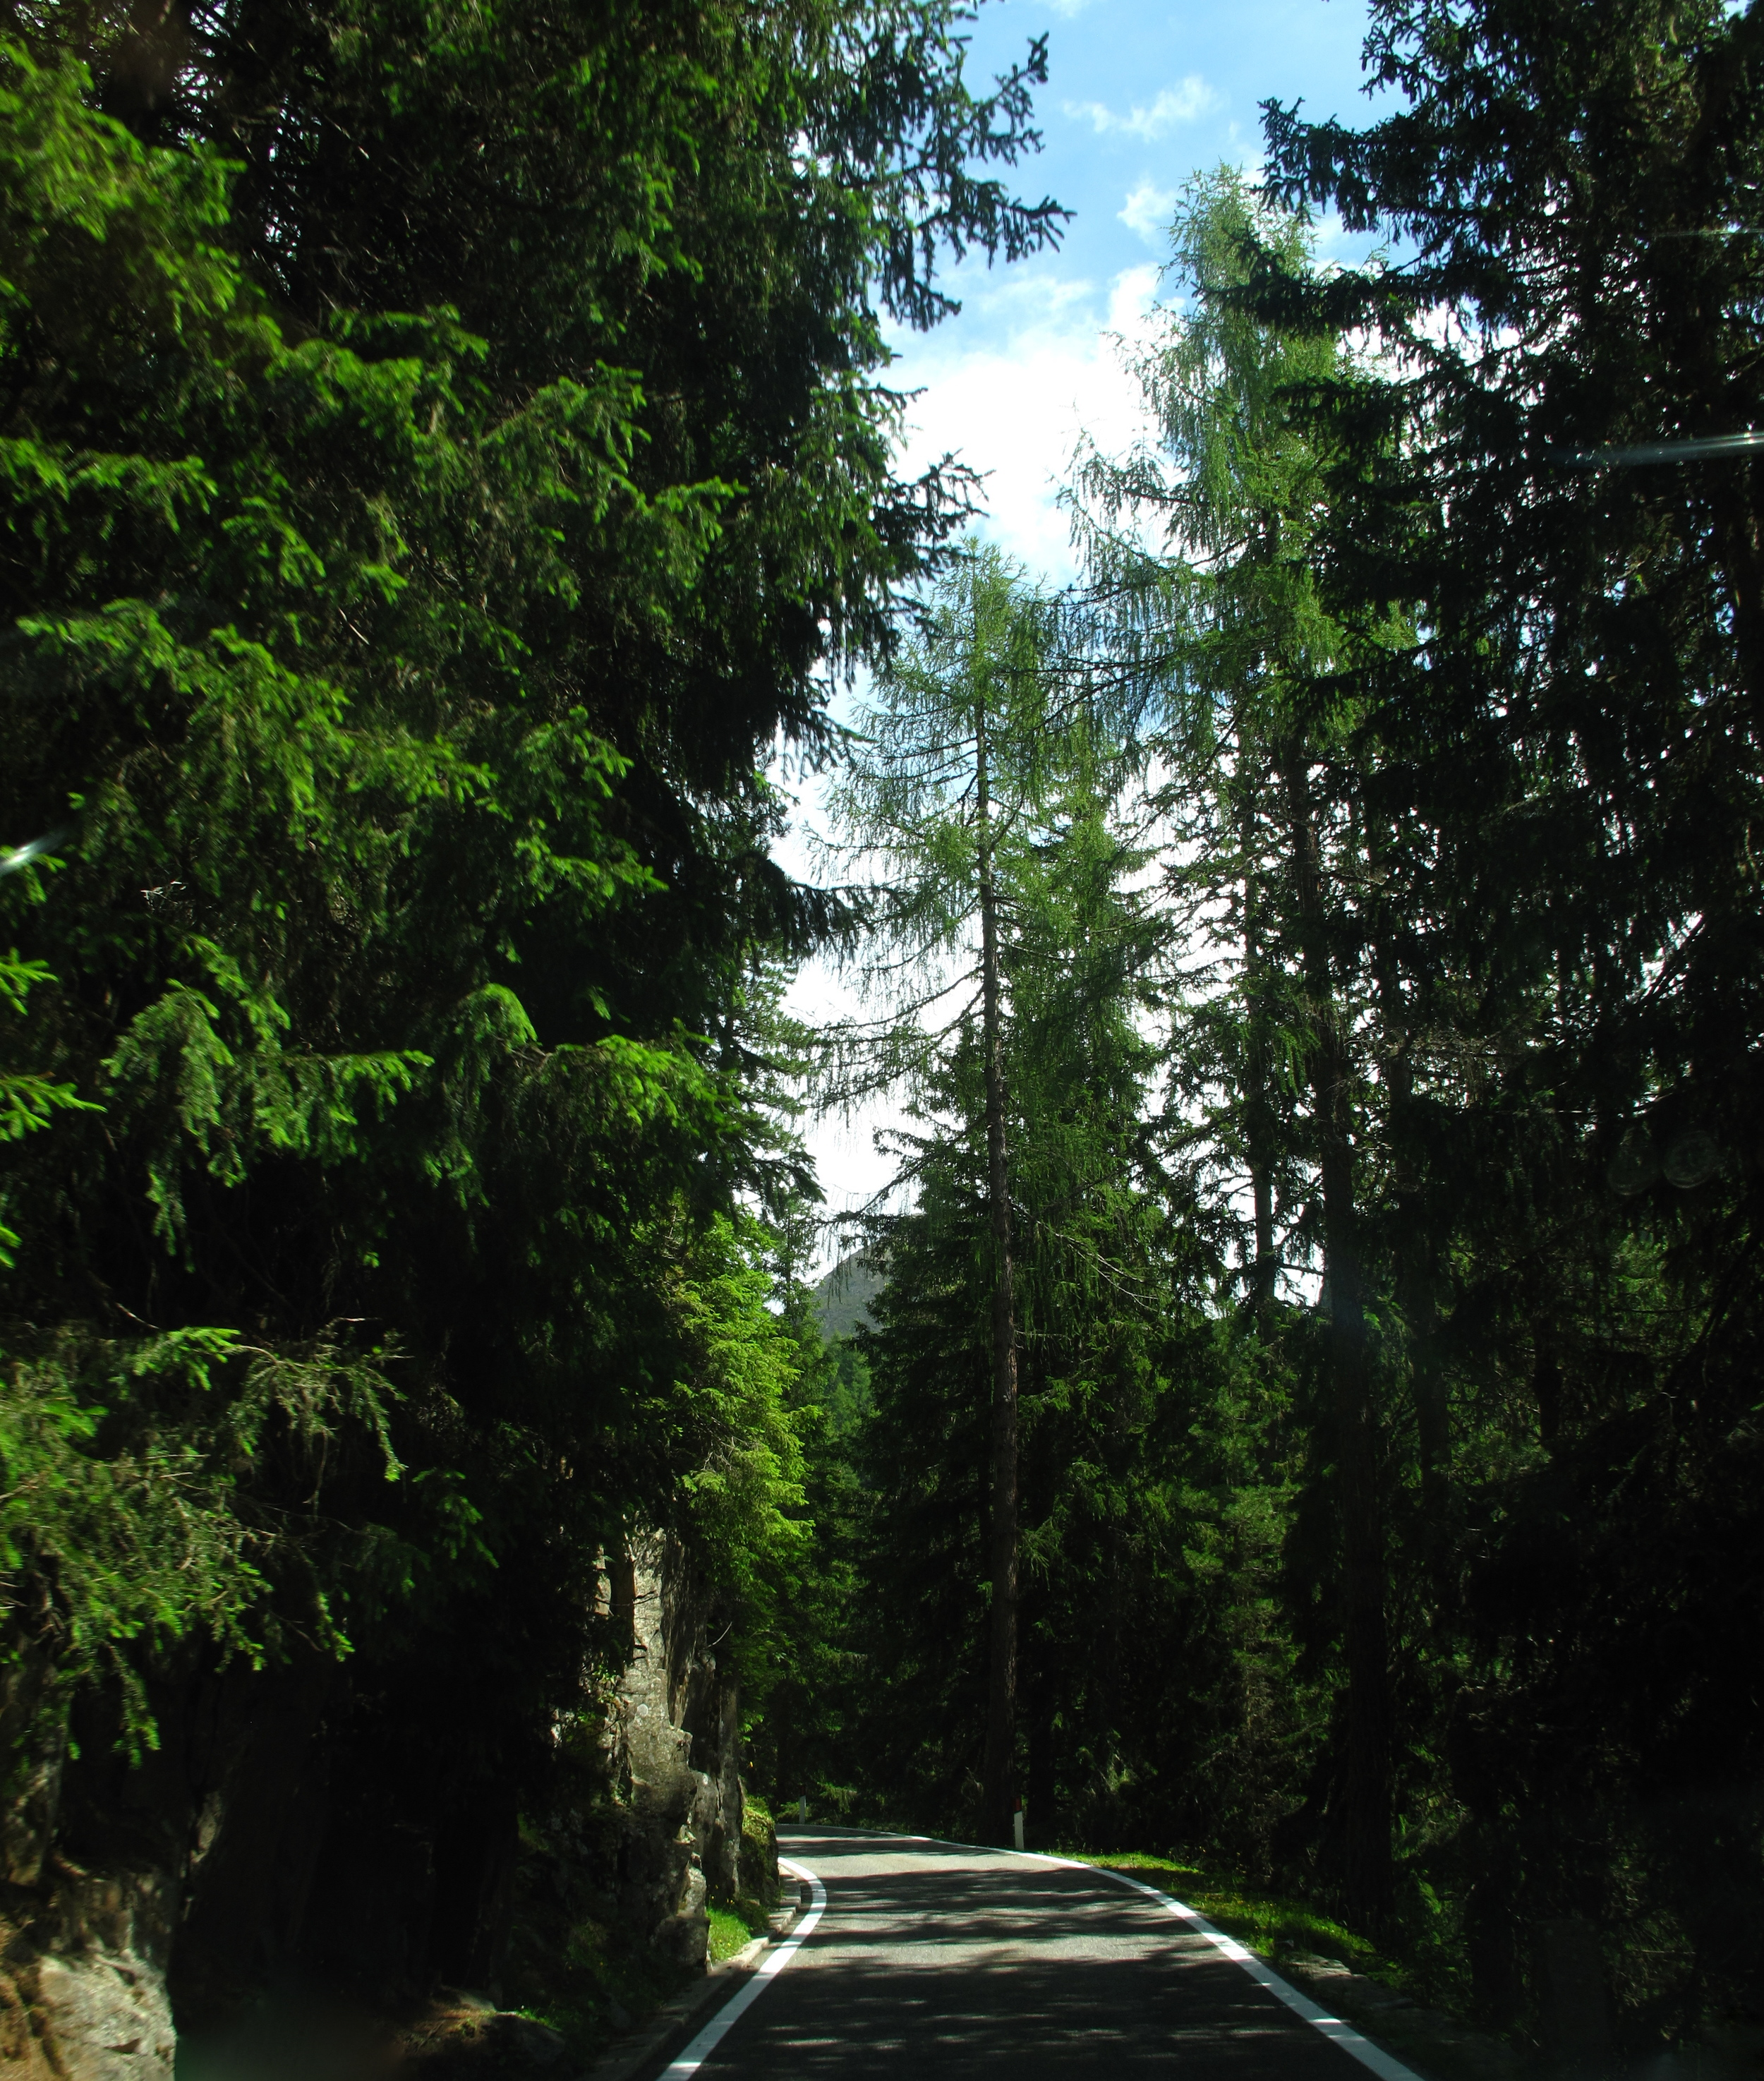 The road into the Tyrol Valley in Austria - a one lane road in the green mountains.